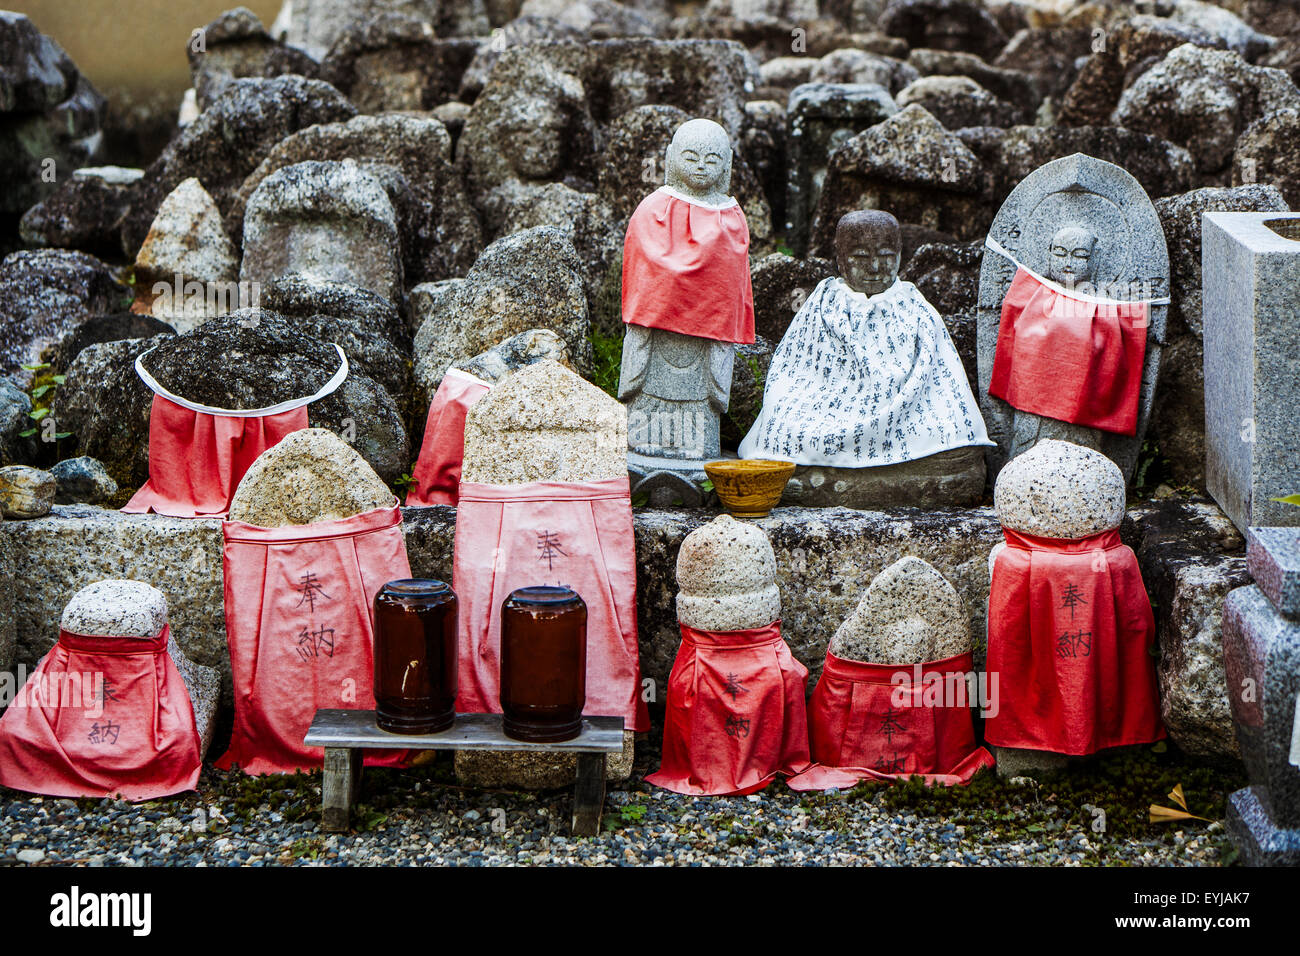 Small jizo statues at famous Daitokuji (Daitoku-ji) Temple. Buddhist zen temple of Rinzai school. - Stock Image